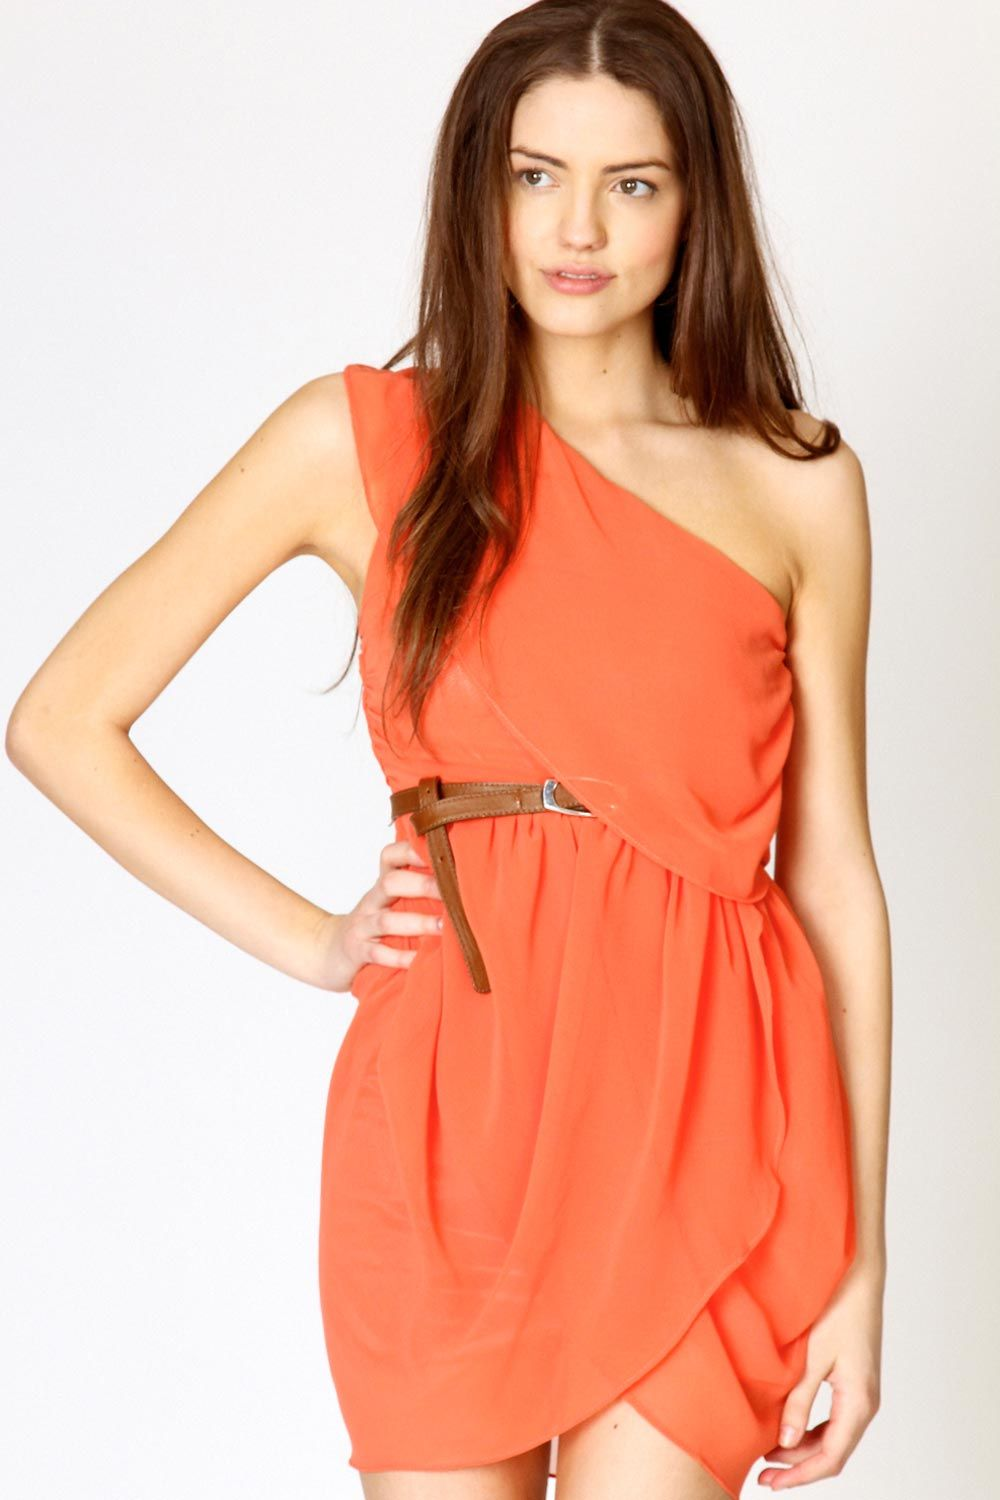 Orange Dress #2dayslook #kelly751 #OrangeDress www ...